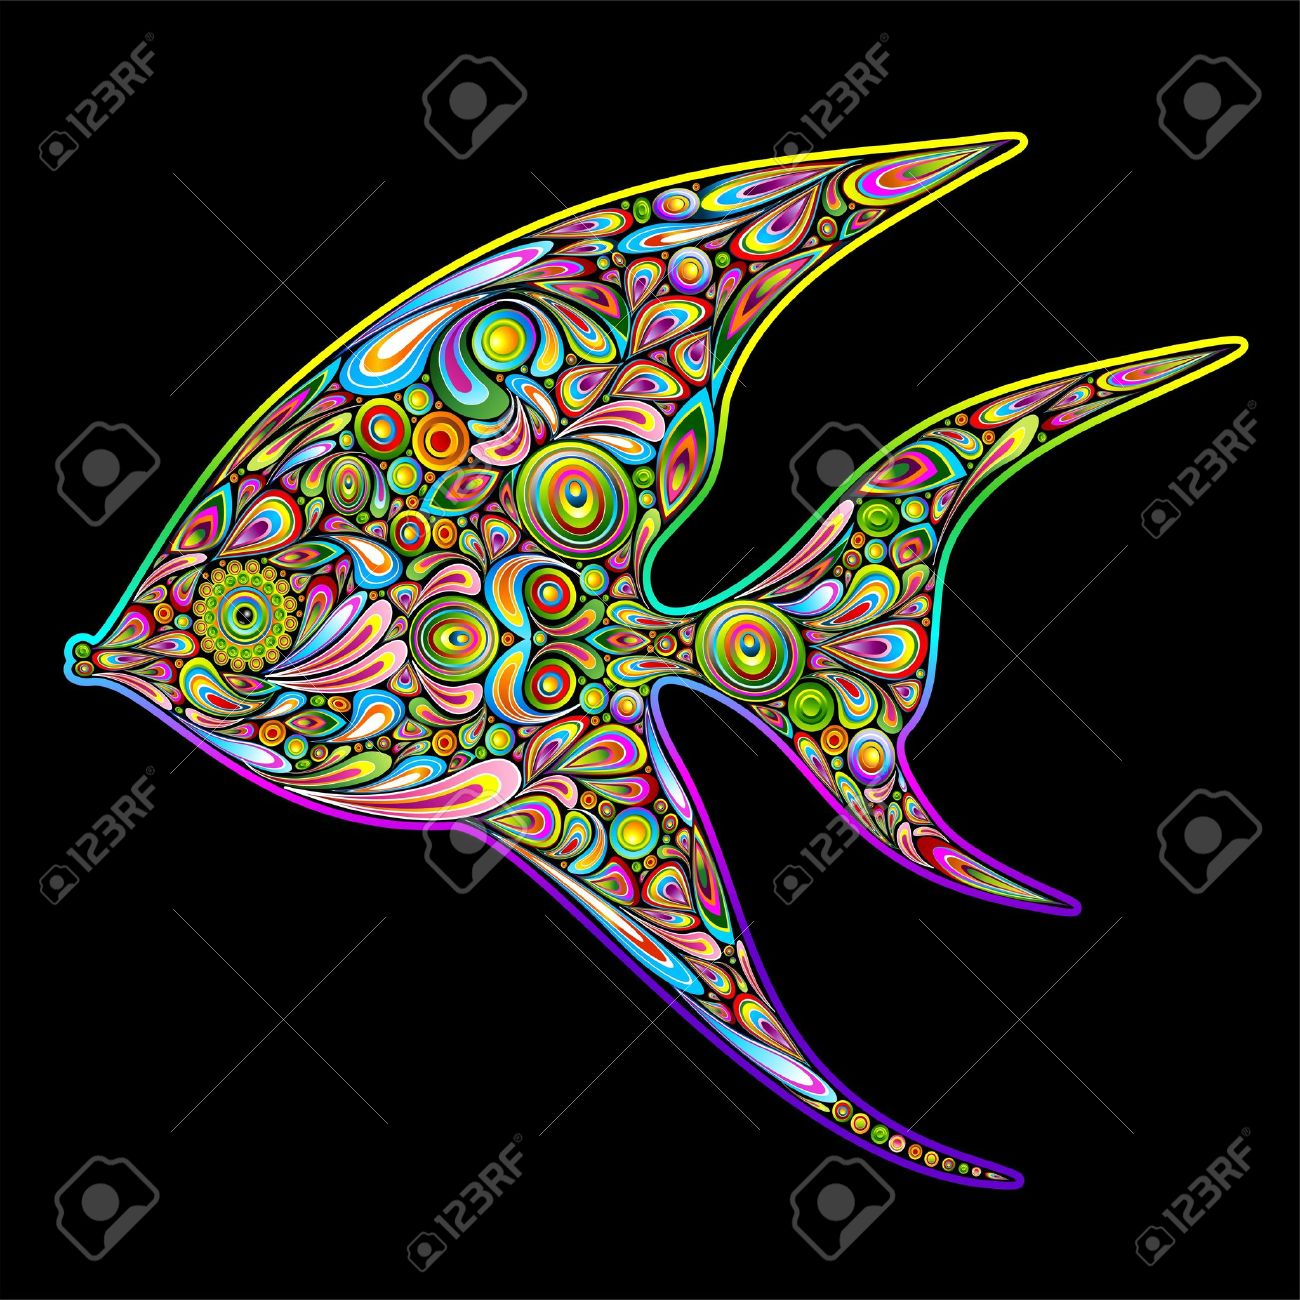 angel fish psychedelic art design royalty free cliparts vectors